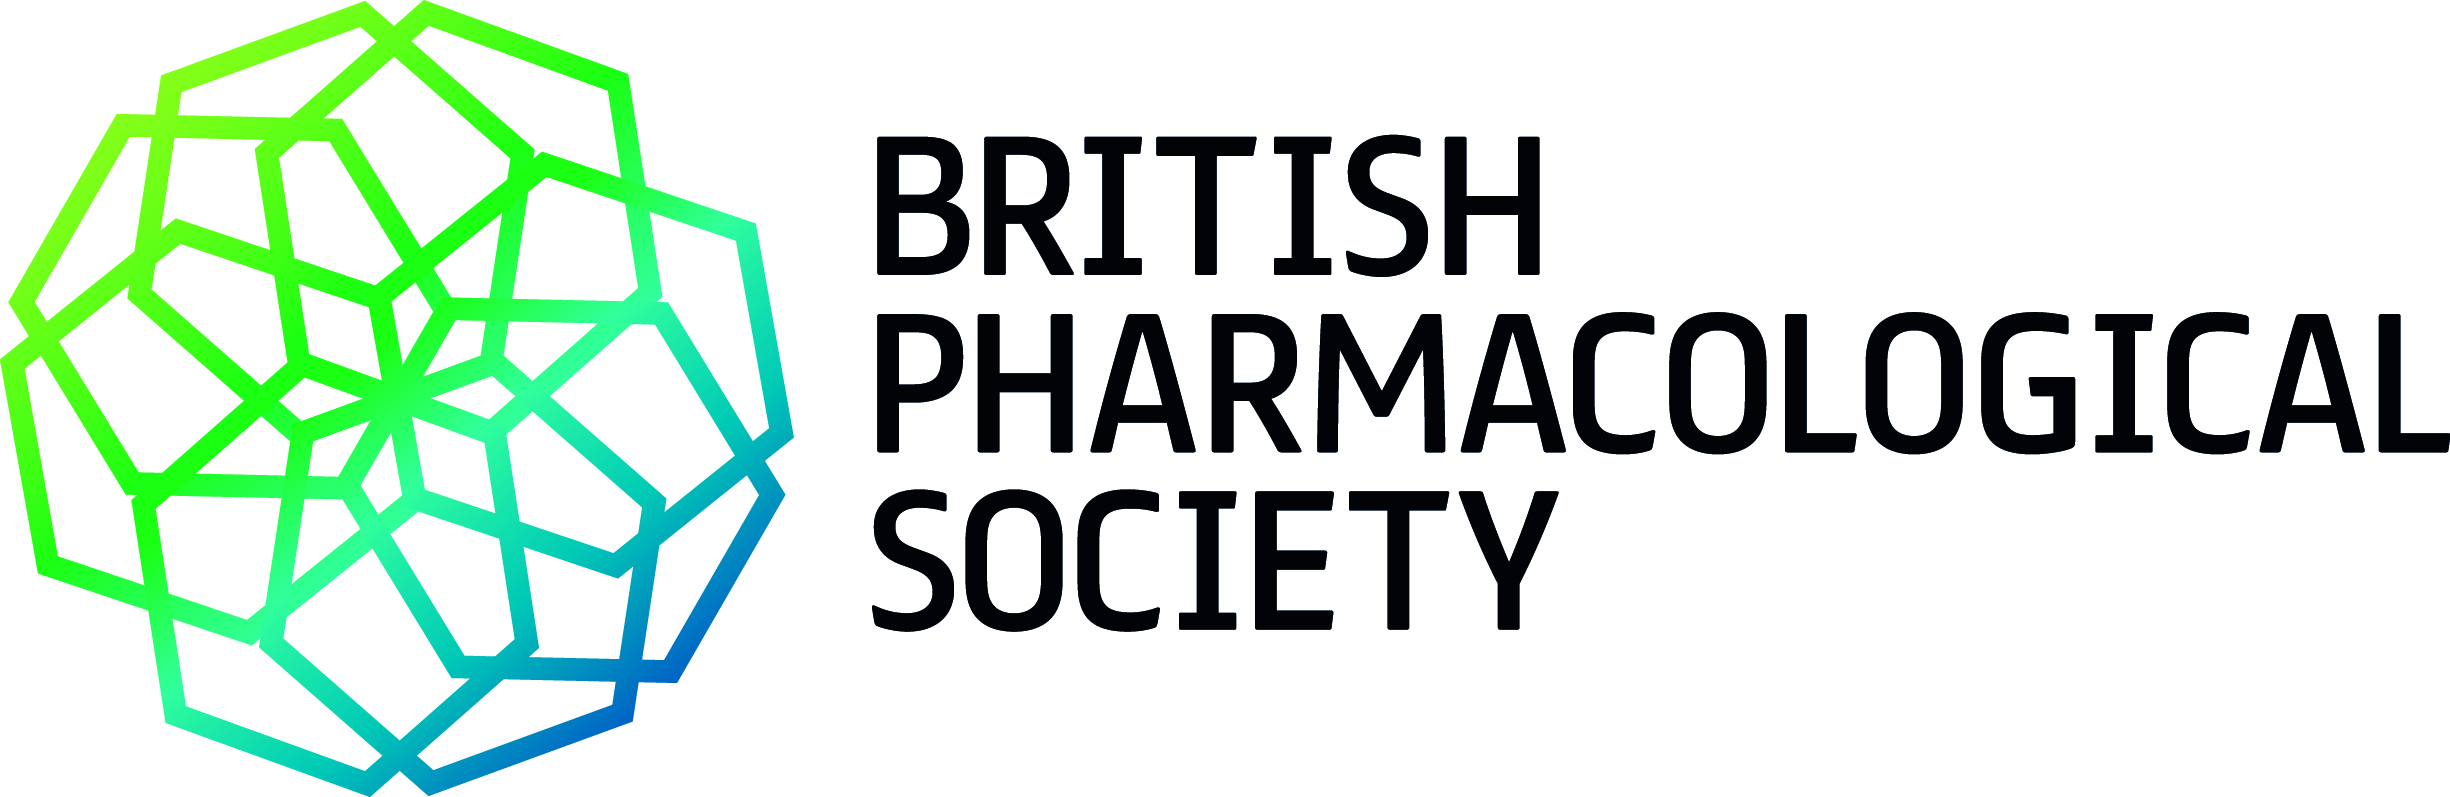 British Pharmacological Society logo